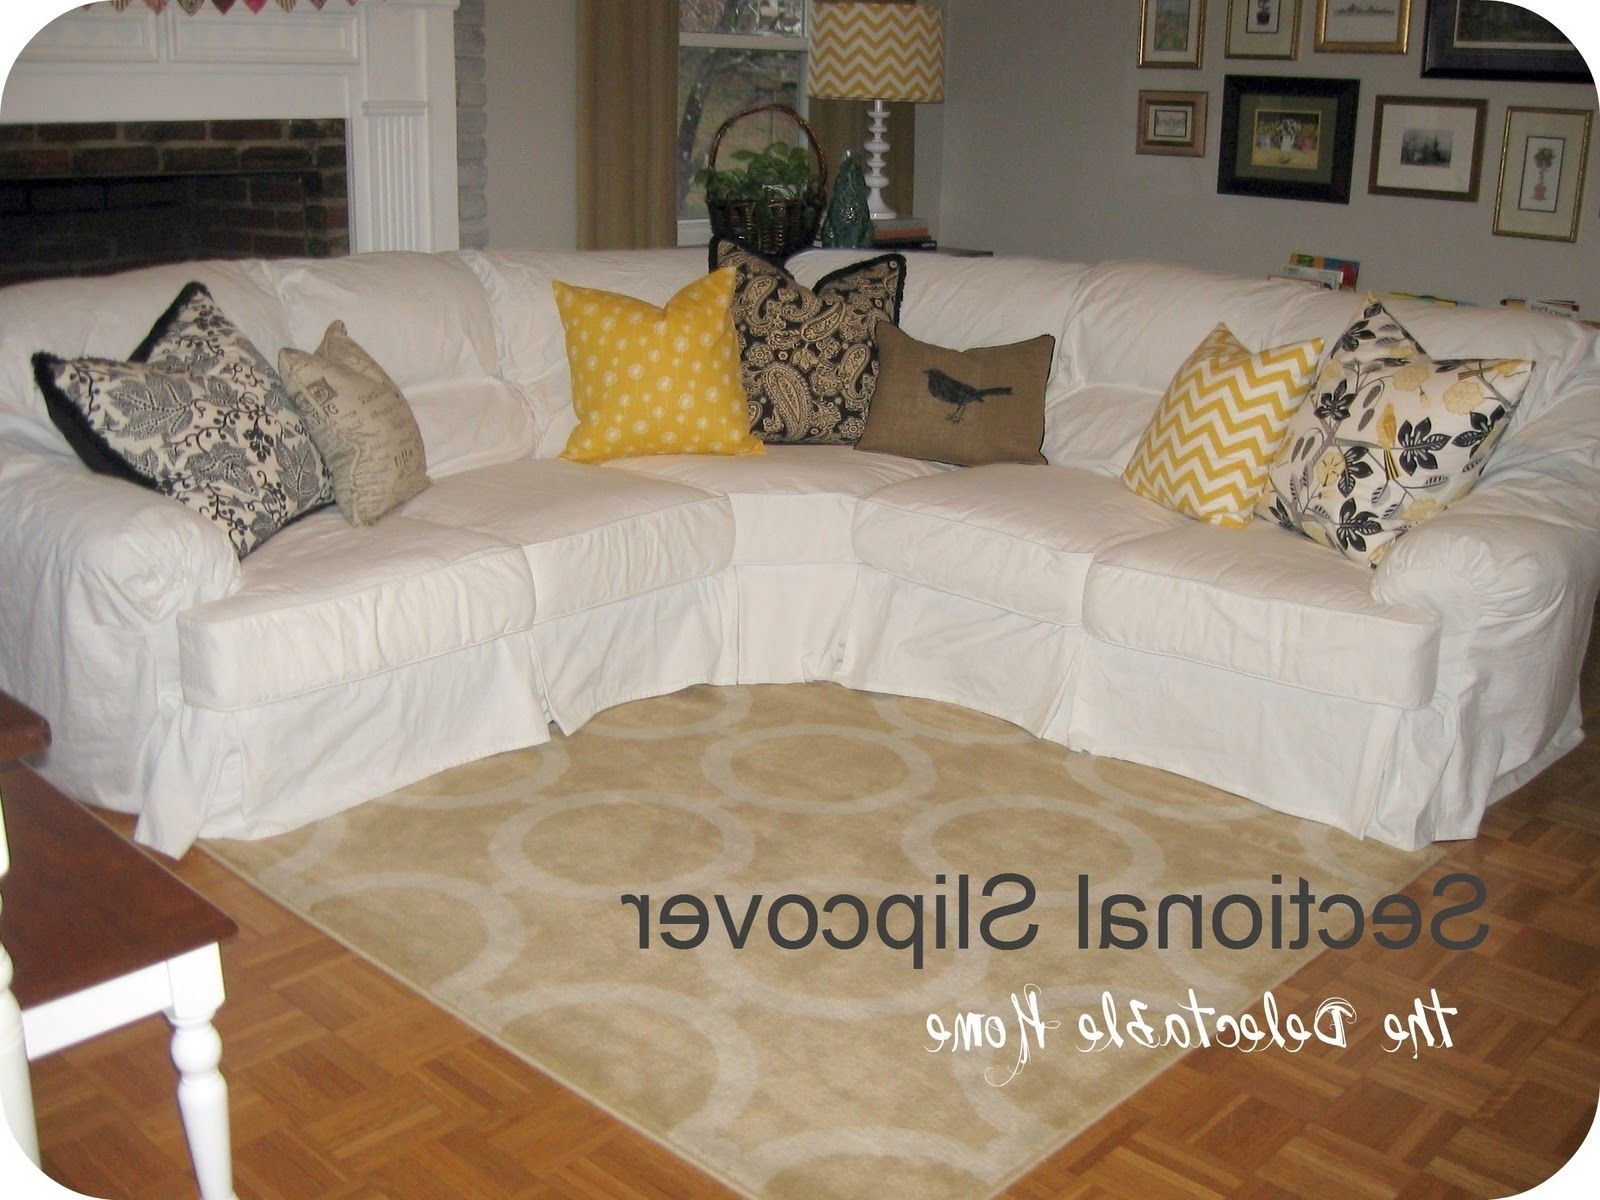 Slipcovers For Sectionals With Chaise For Well Known The Delectable Home: Impossible Sectional Slipcover (View 13 of 15)